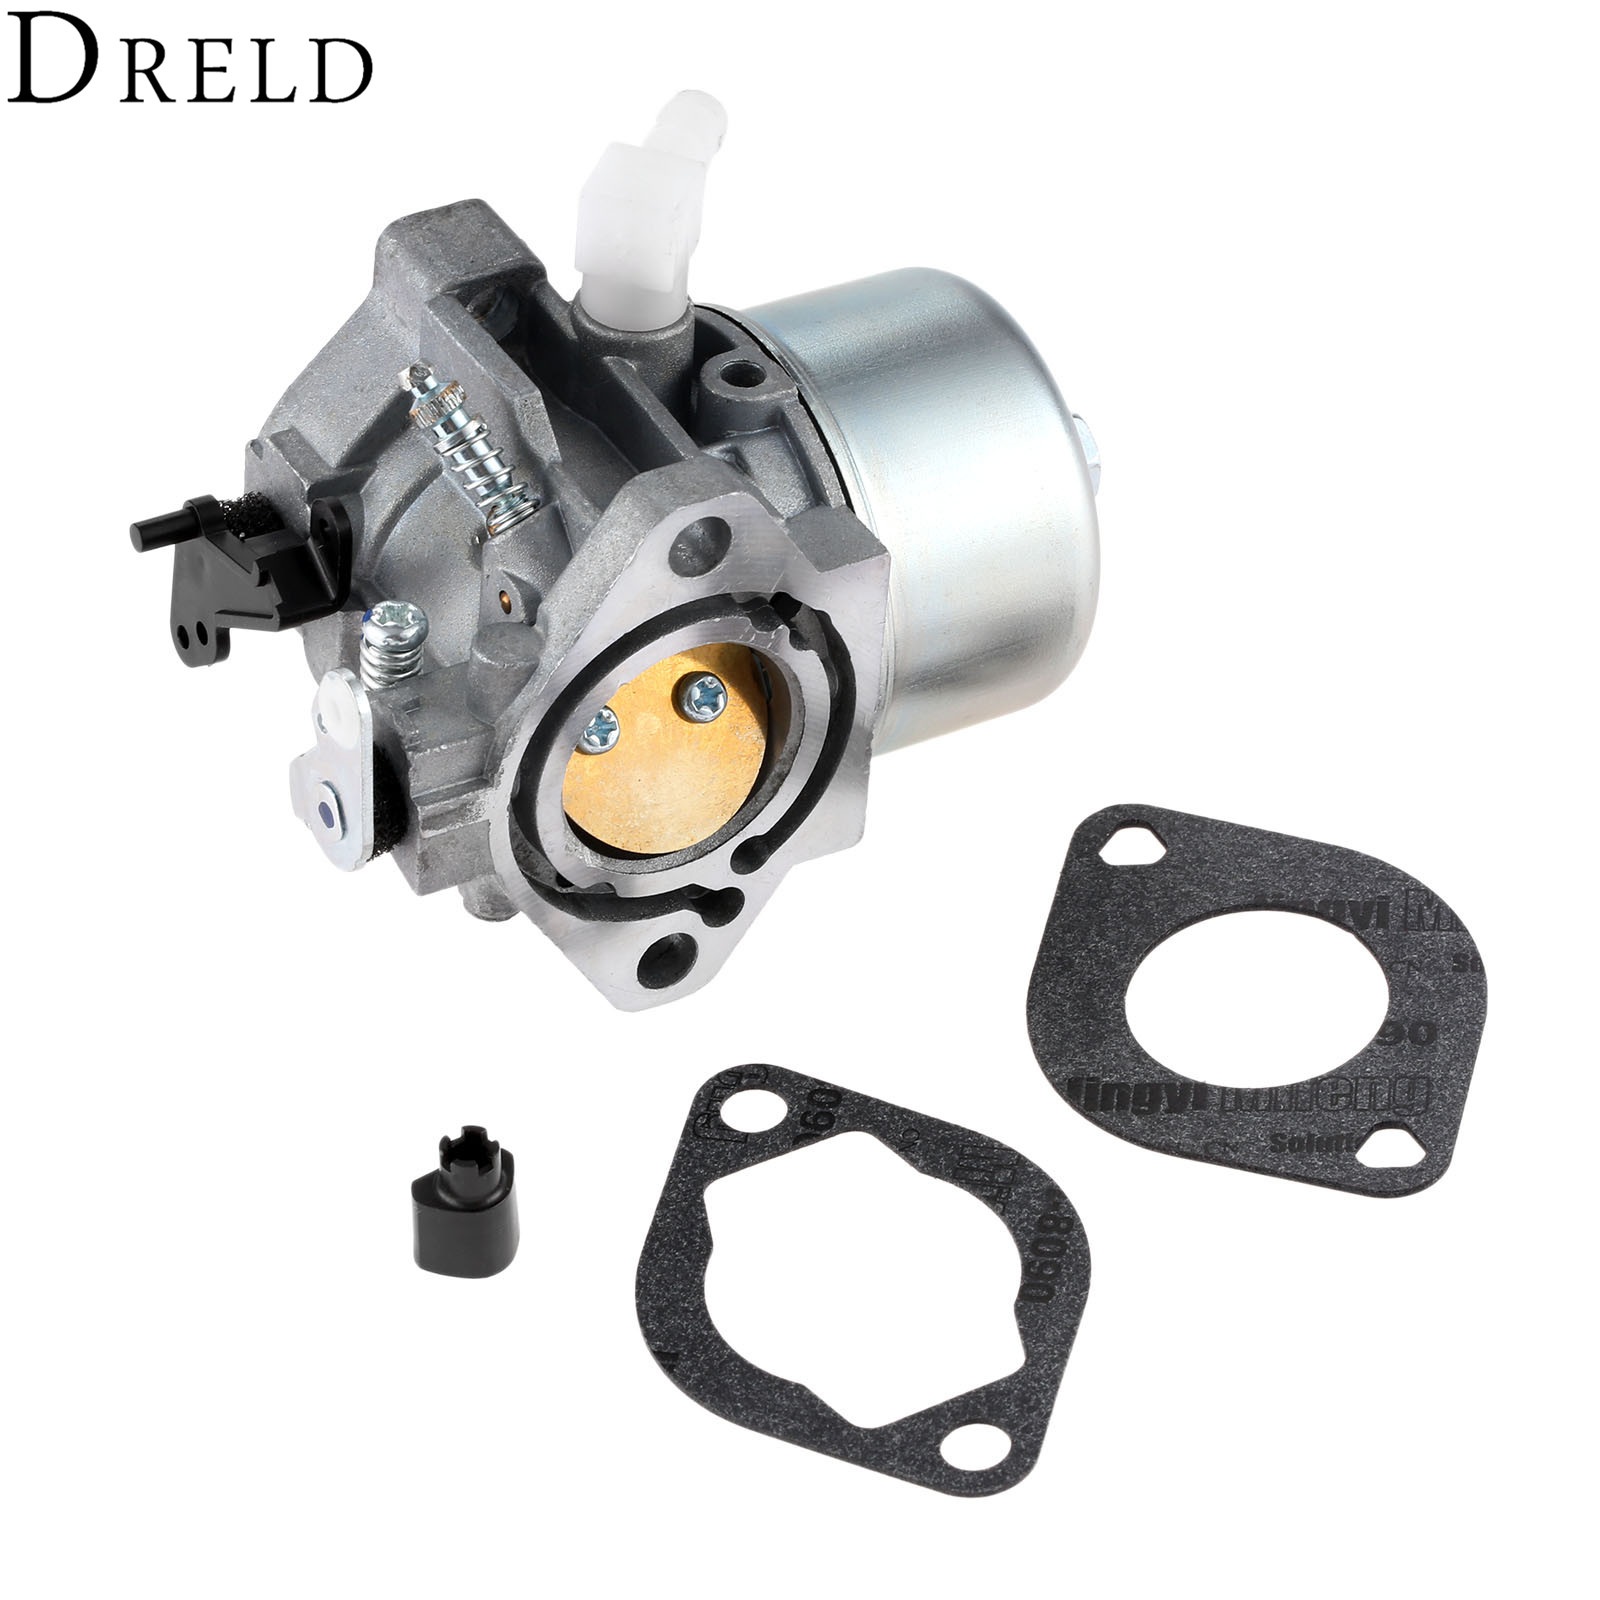 dreld replacements carburetor with gasket fuel filter line. Black Bedroom Furniture Sets. Home Design Ideas